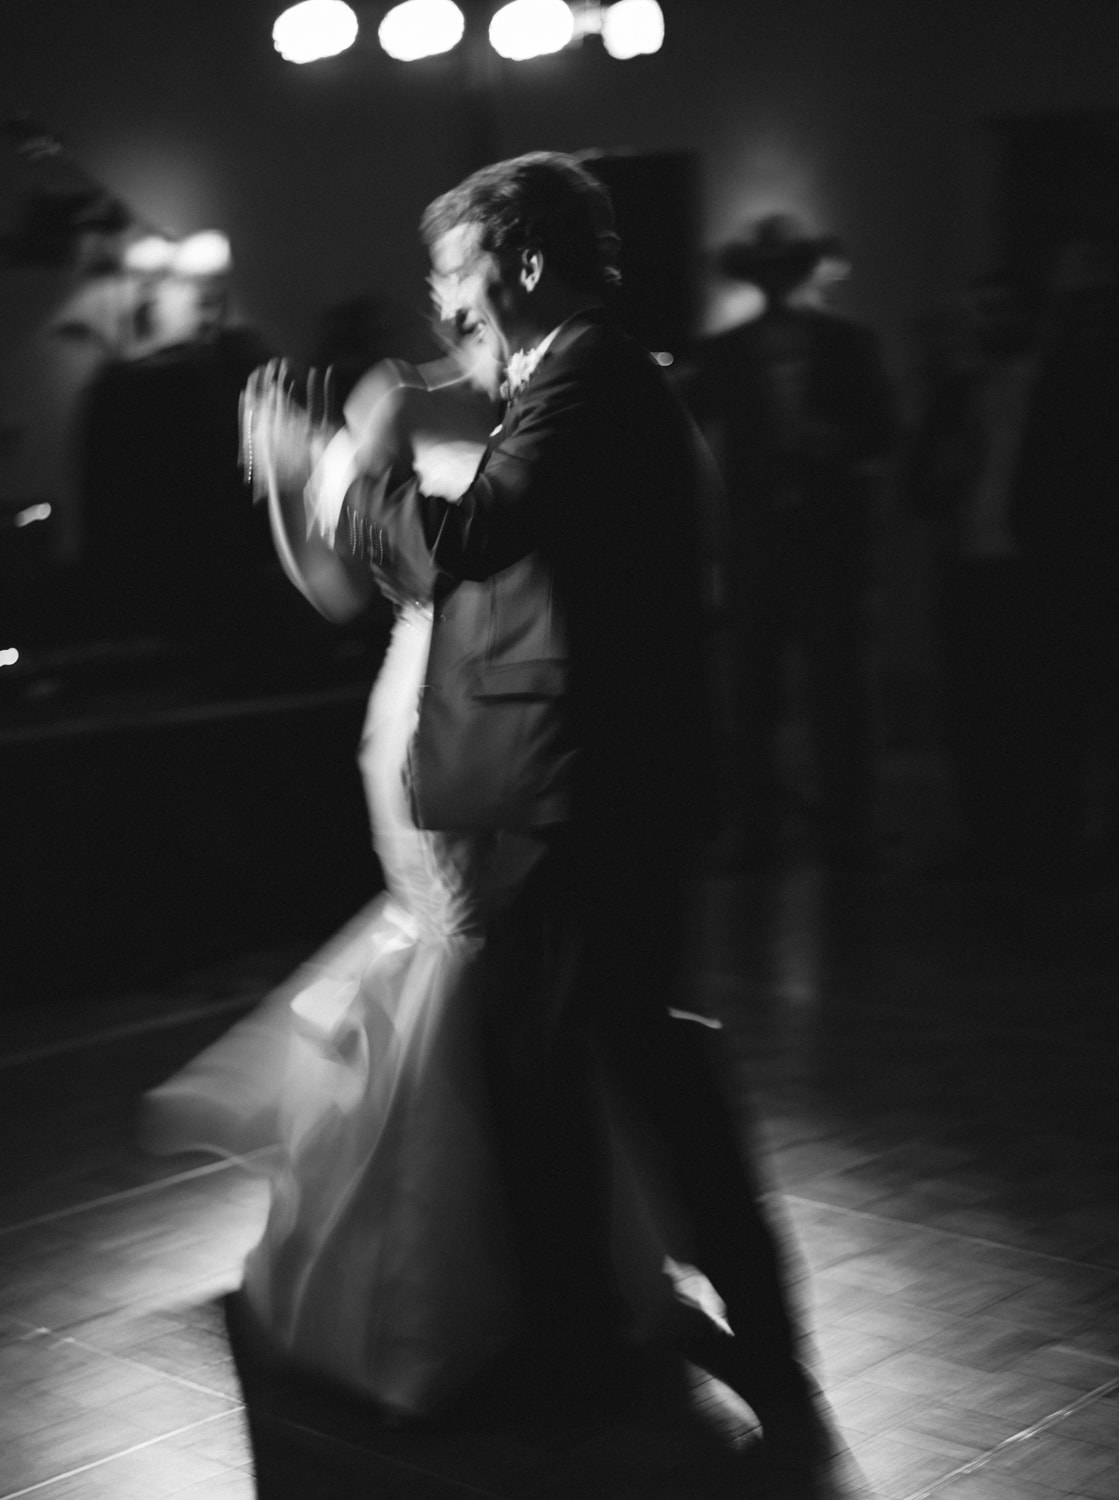 Sam+Kate_Santa_Fe_Wed-681.jpg